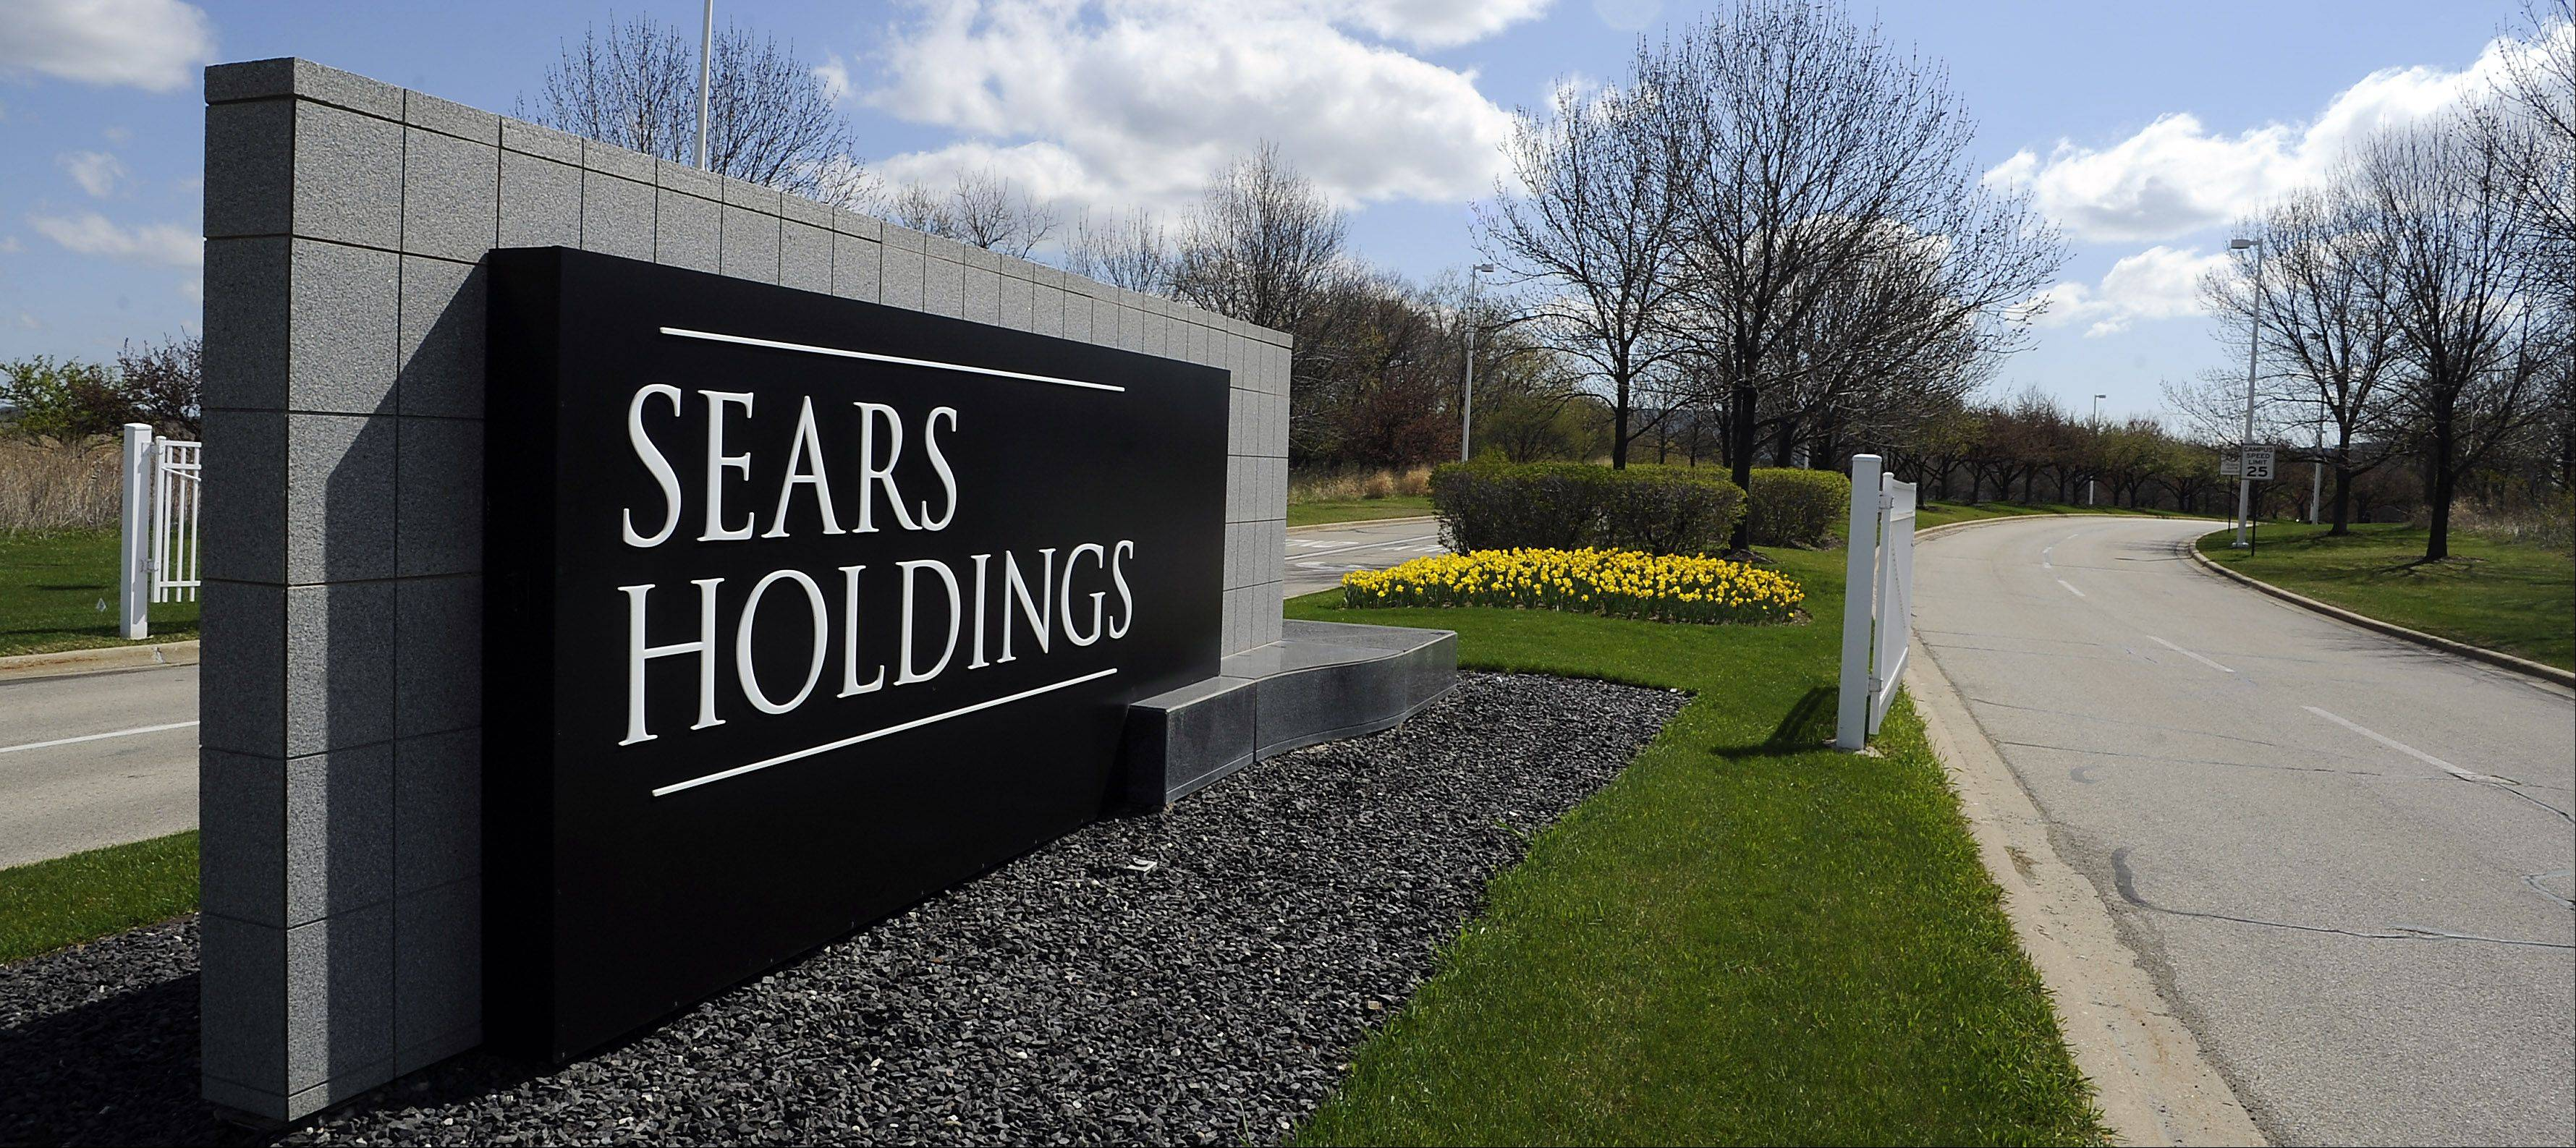 Gov. Pat Quinn has signed a series of tax breaks for Sears into law.